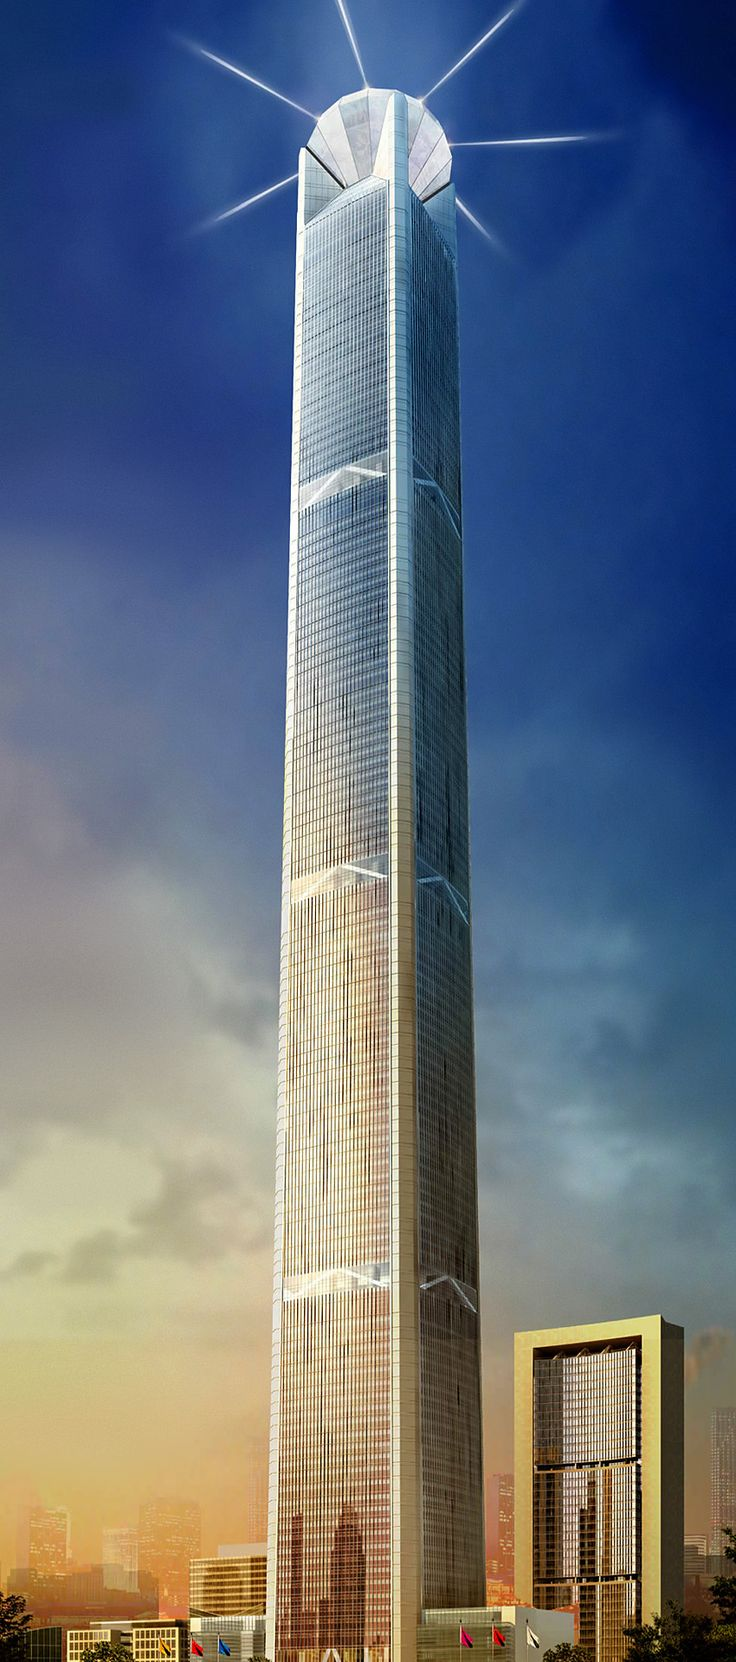 Goldin Finance 117 Tower, Tianjin, China by P & T Group Architects